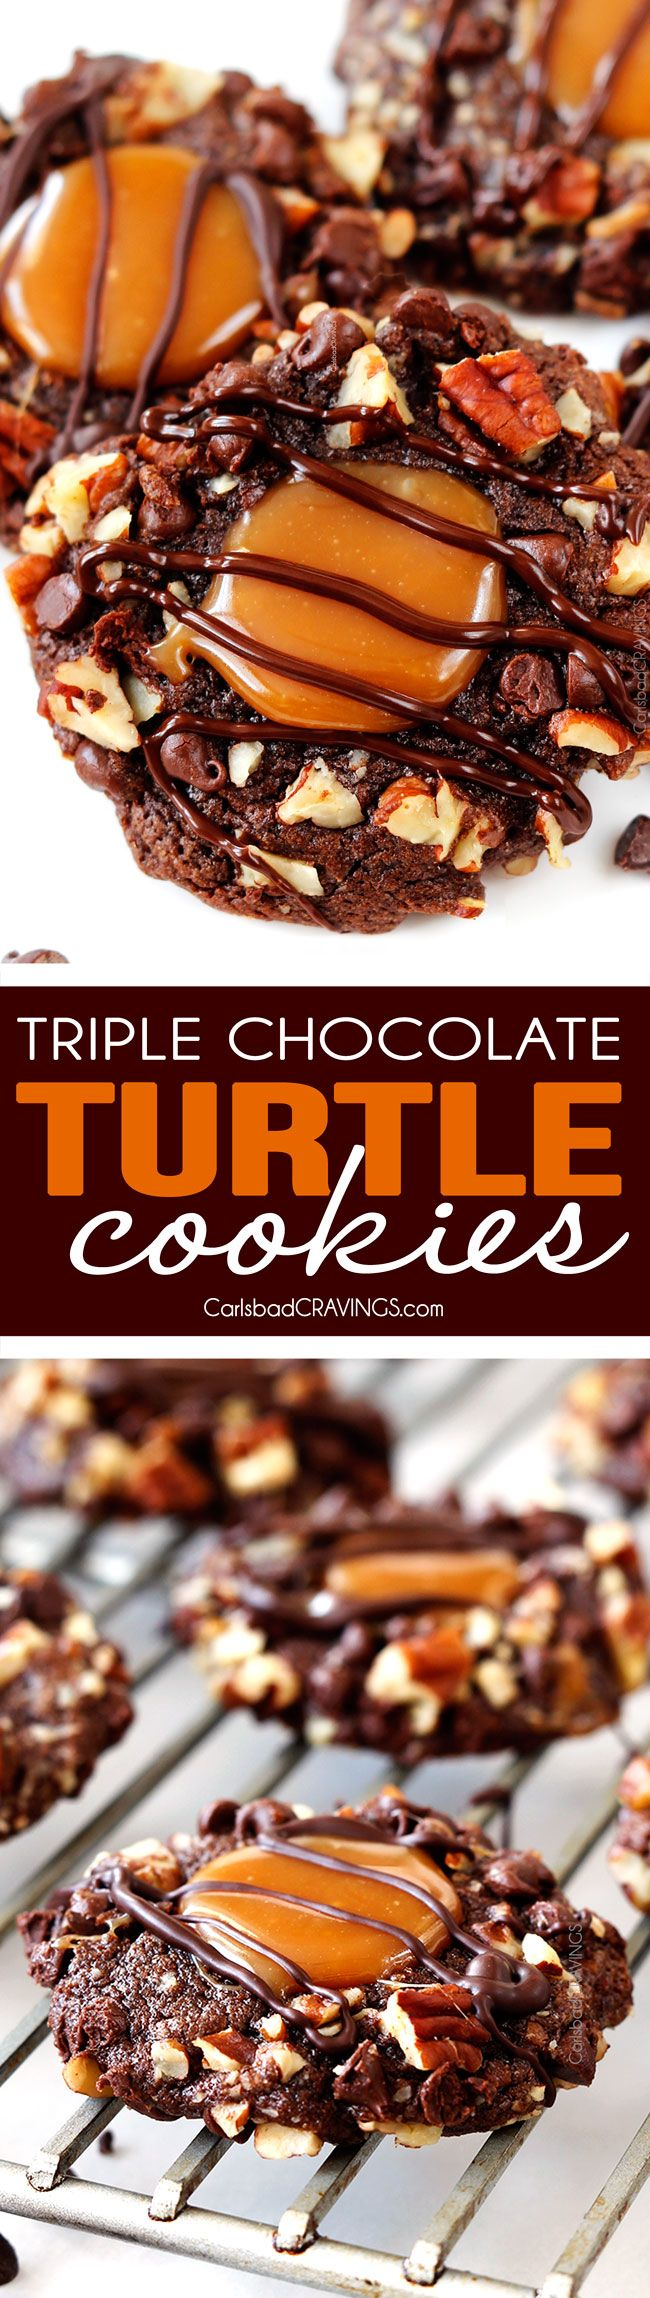 My favorite cookie! Triple Chocolate Turtle Cookies rolled in mini chocolate chips and pecans then filled with creamy, silky caramel and drizzled with chocolate and easier than you think!